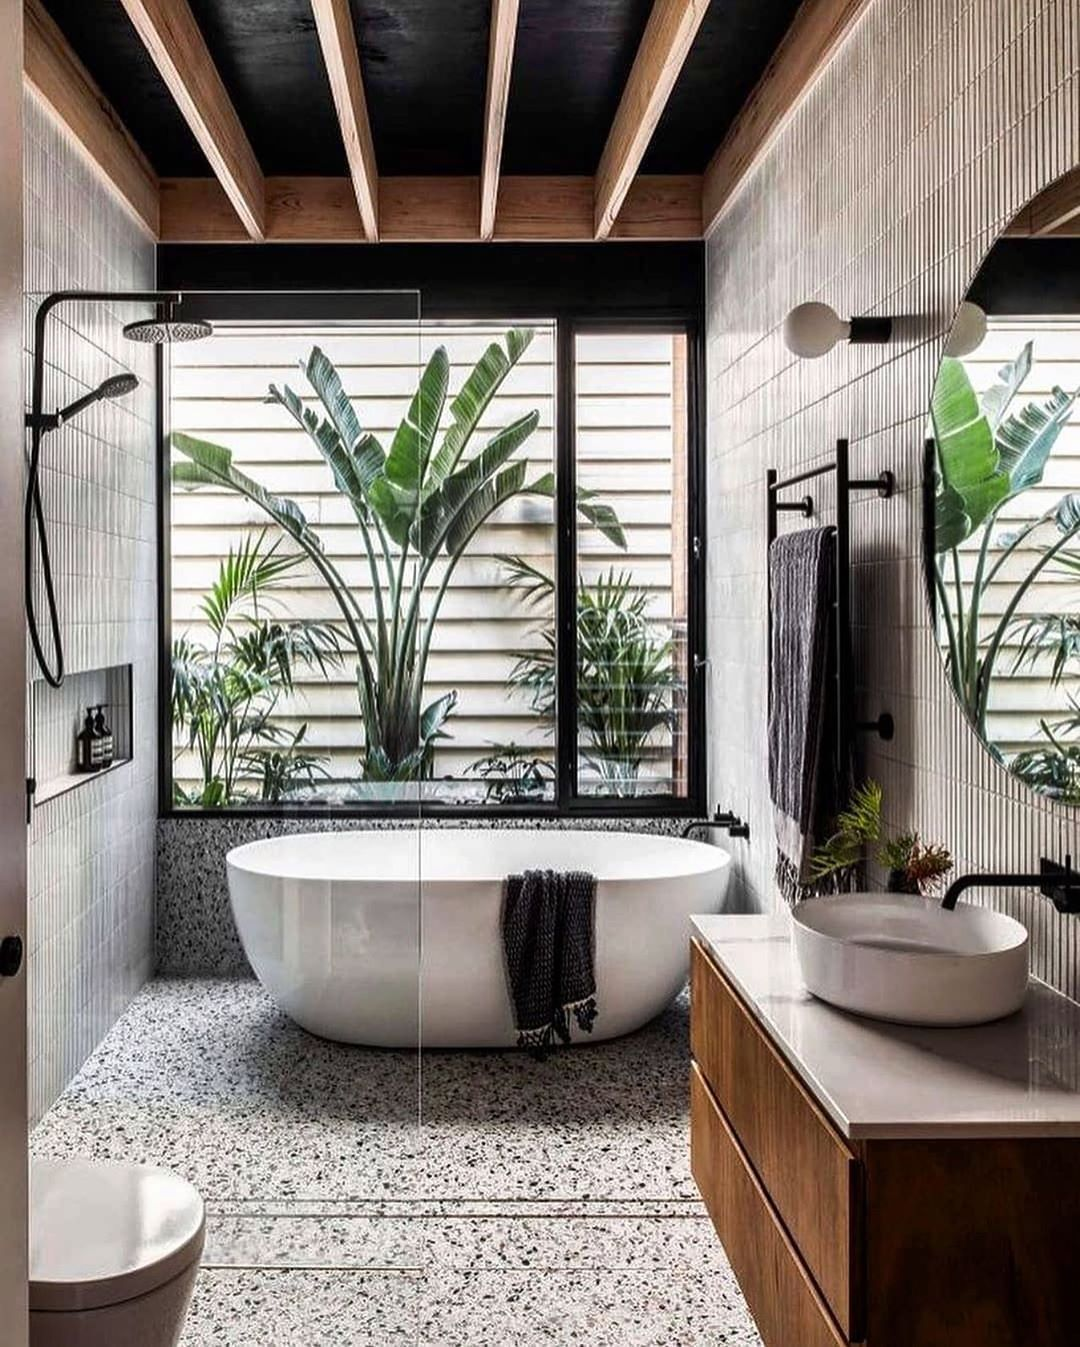 Design Magazine On Instagram Tropical Vibes Bathroom Design Figr Architects Photography By Tom Bathroom Interior Design Home Additions Bathroom Design